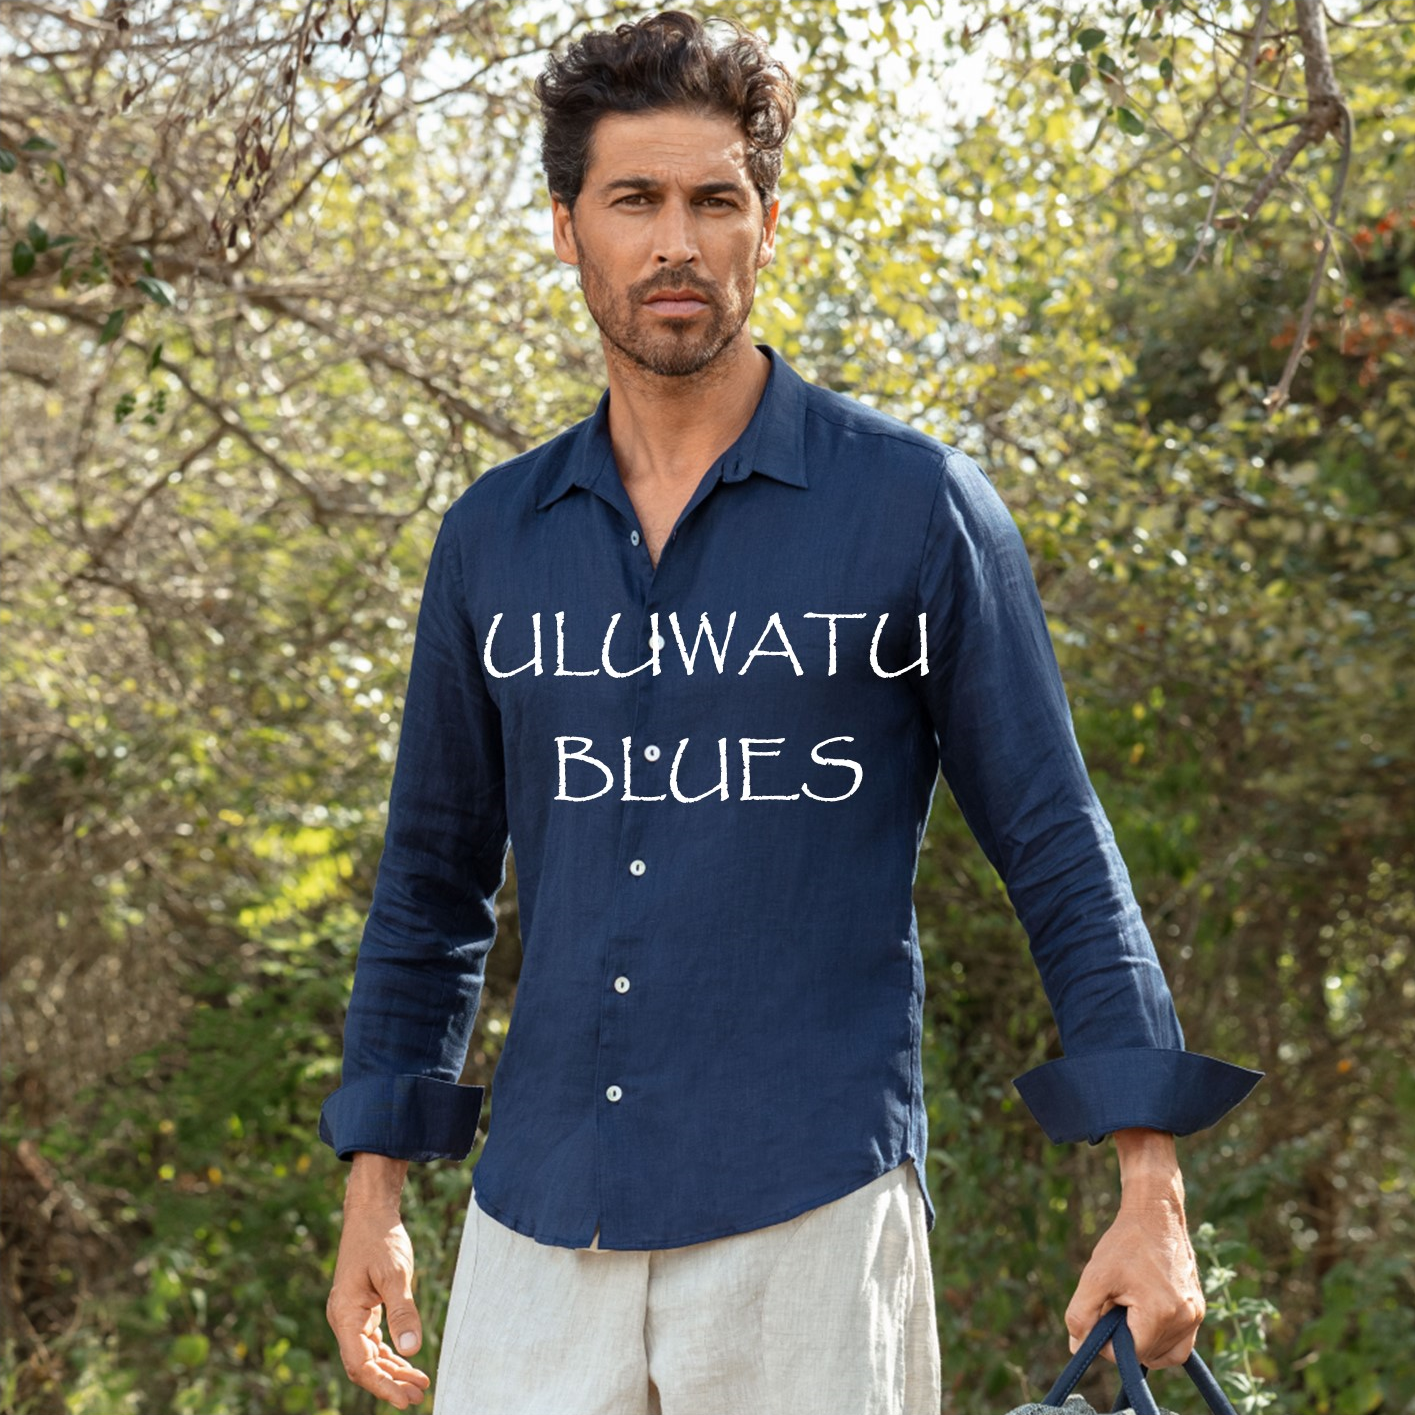 Quality linen men's clothing